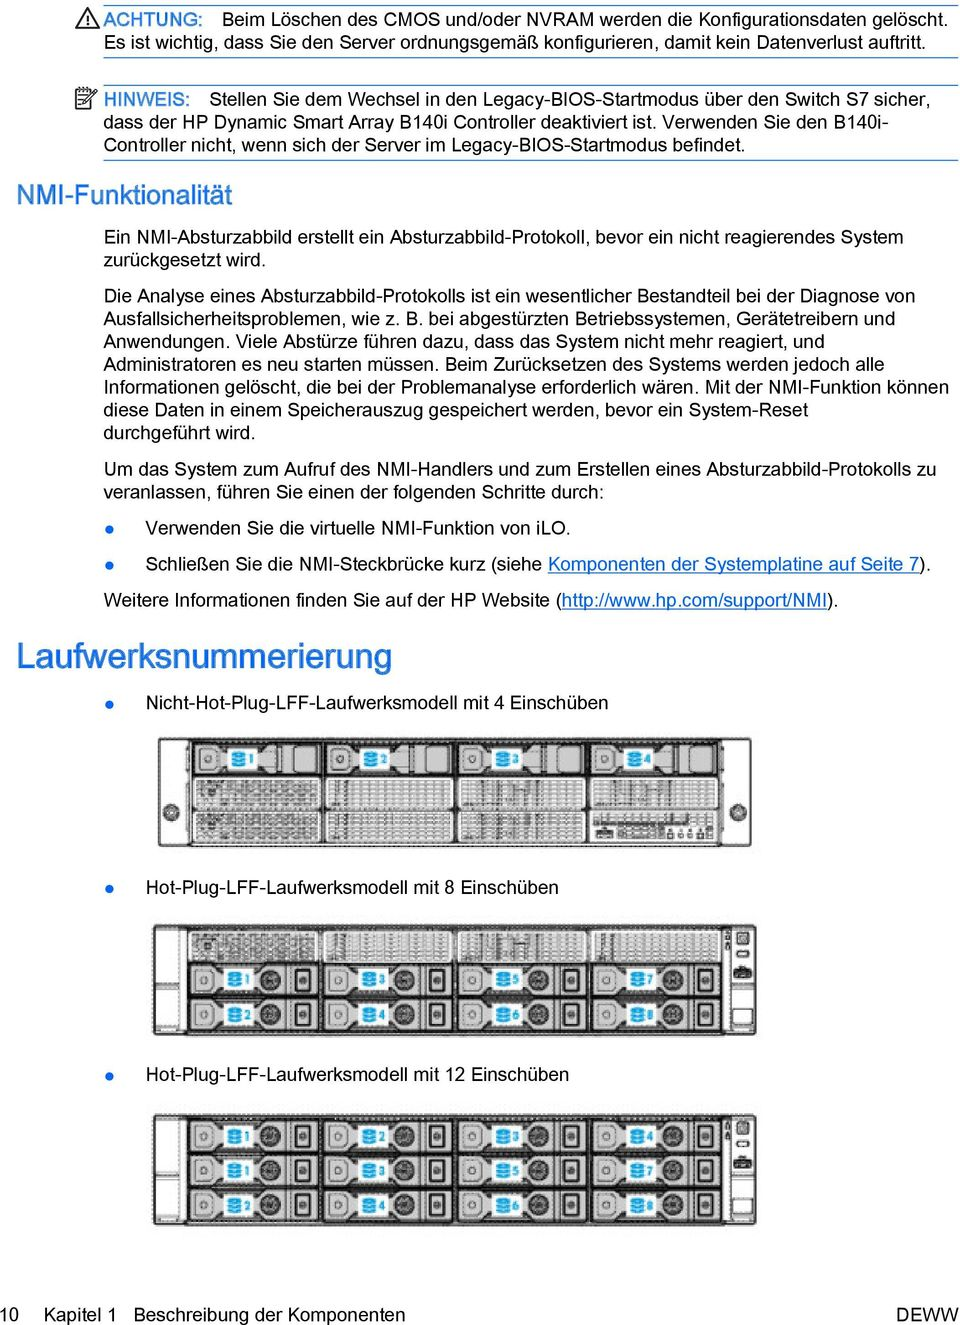 Old Fashioned Jacobsen 628d Blade Switch Wiring Diagram For Power ...